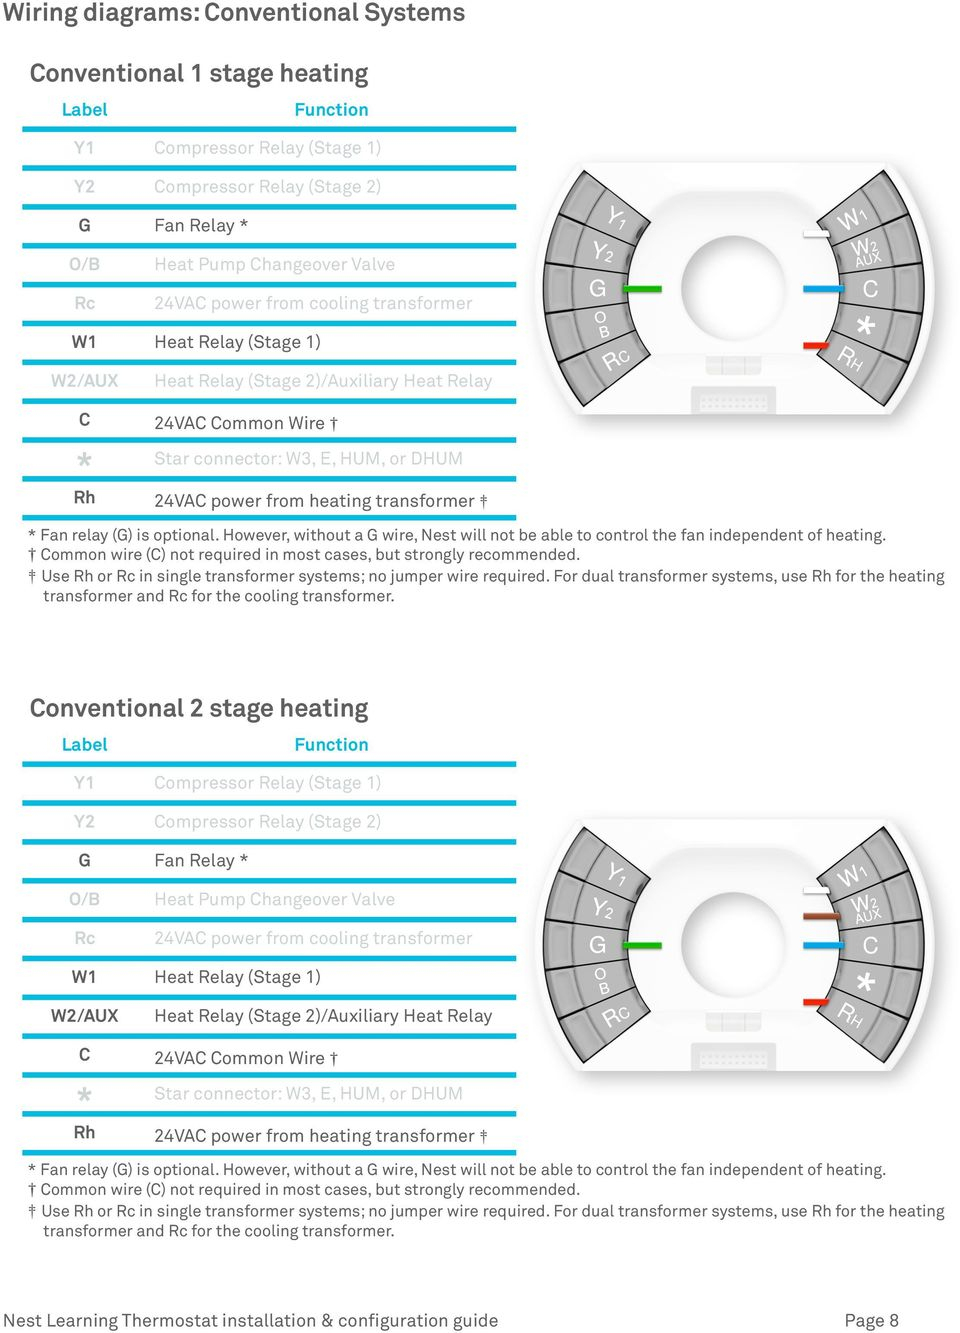 Nest Learning Thermostat Pro Installation & Configuration Guide - Pdf - Nest Wiring Diagram For Two Stage Fan